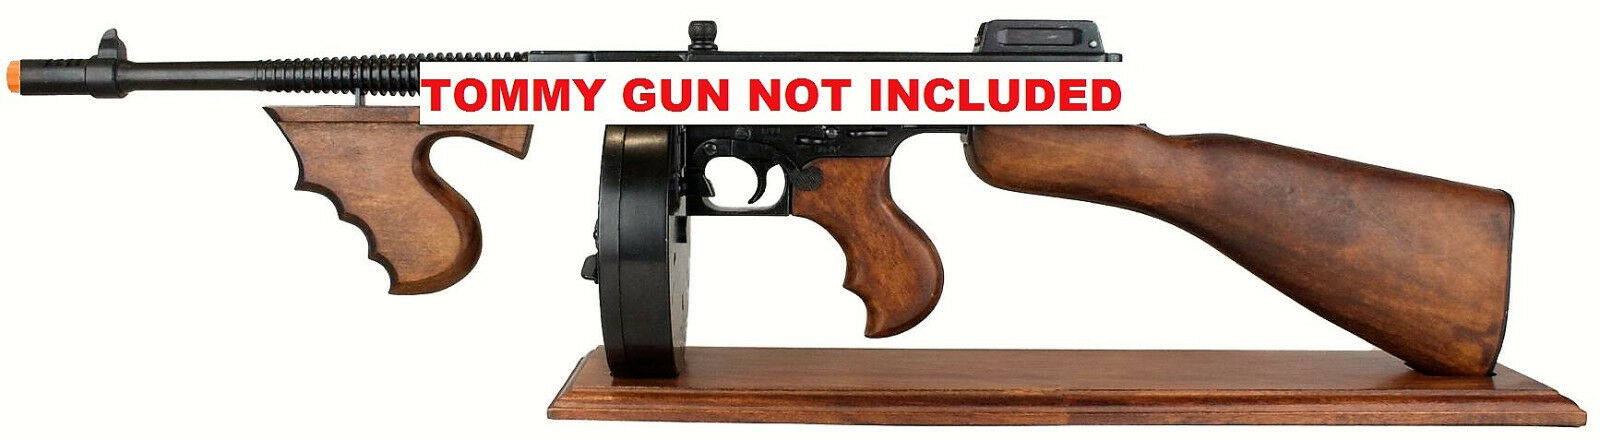 Details about Wood Display Stand for Denix Non-Firing Replica Thompson  Submachine Gun